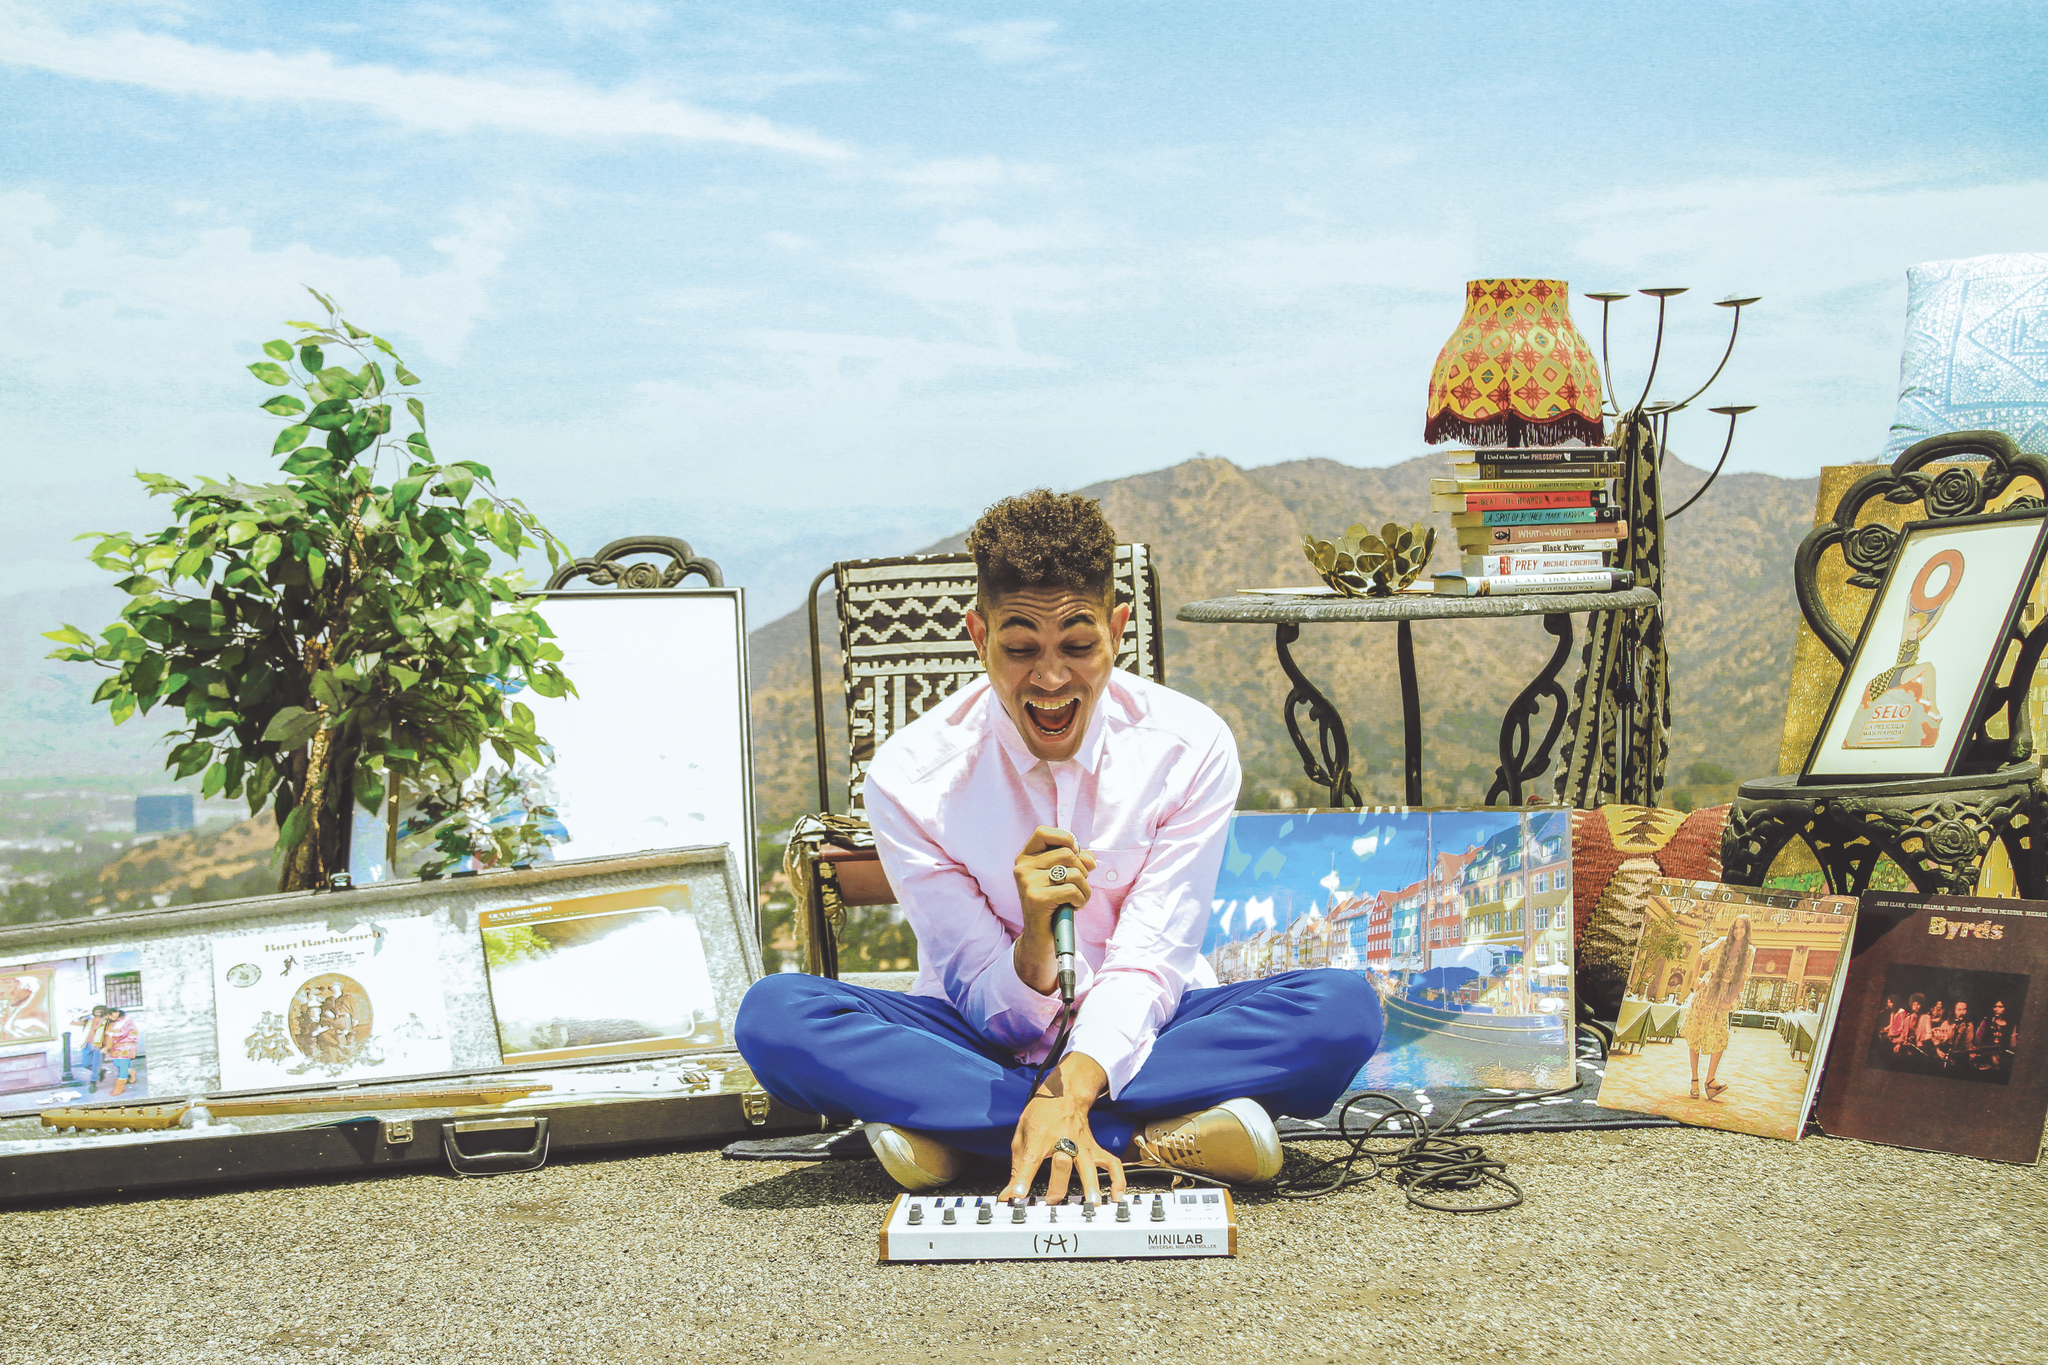 INTERVIEW: Bryce Vine – While 2017 was a big year for Bryce Vine, he's by no means done yet